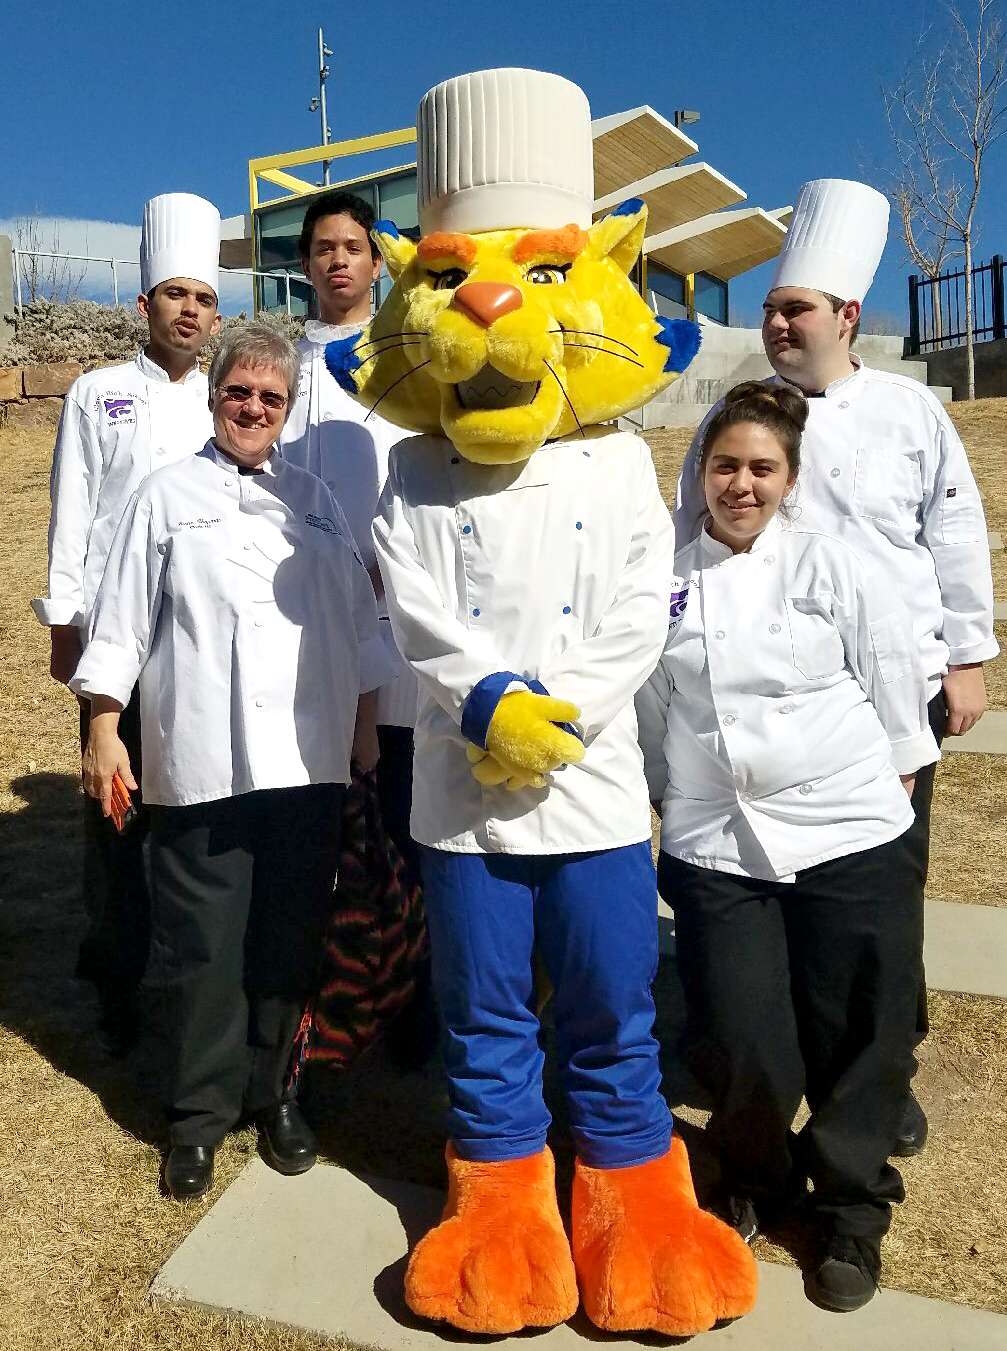 Image of CHS Culinary students and their teacher posing with mascot